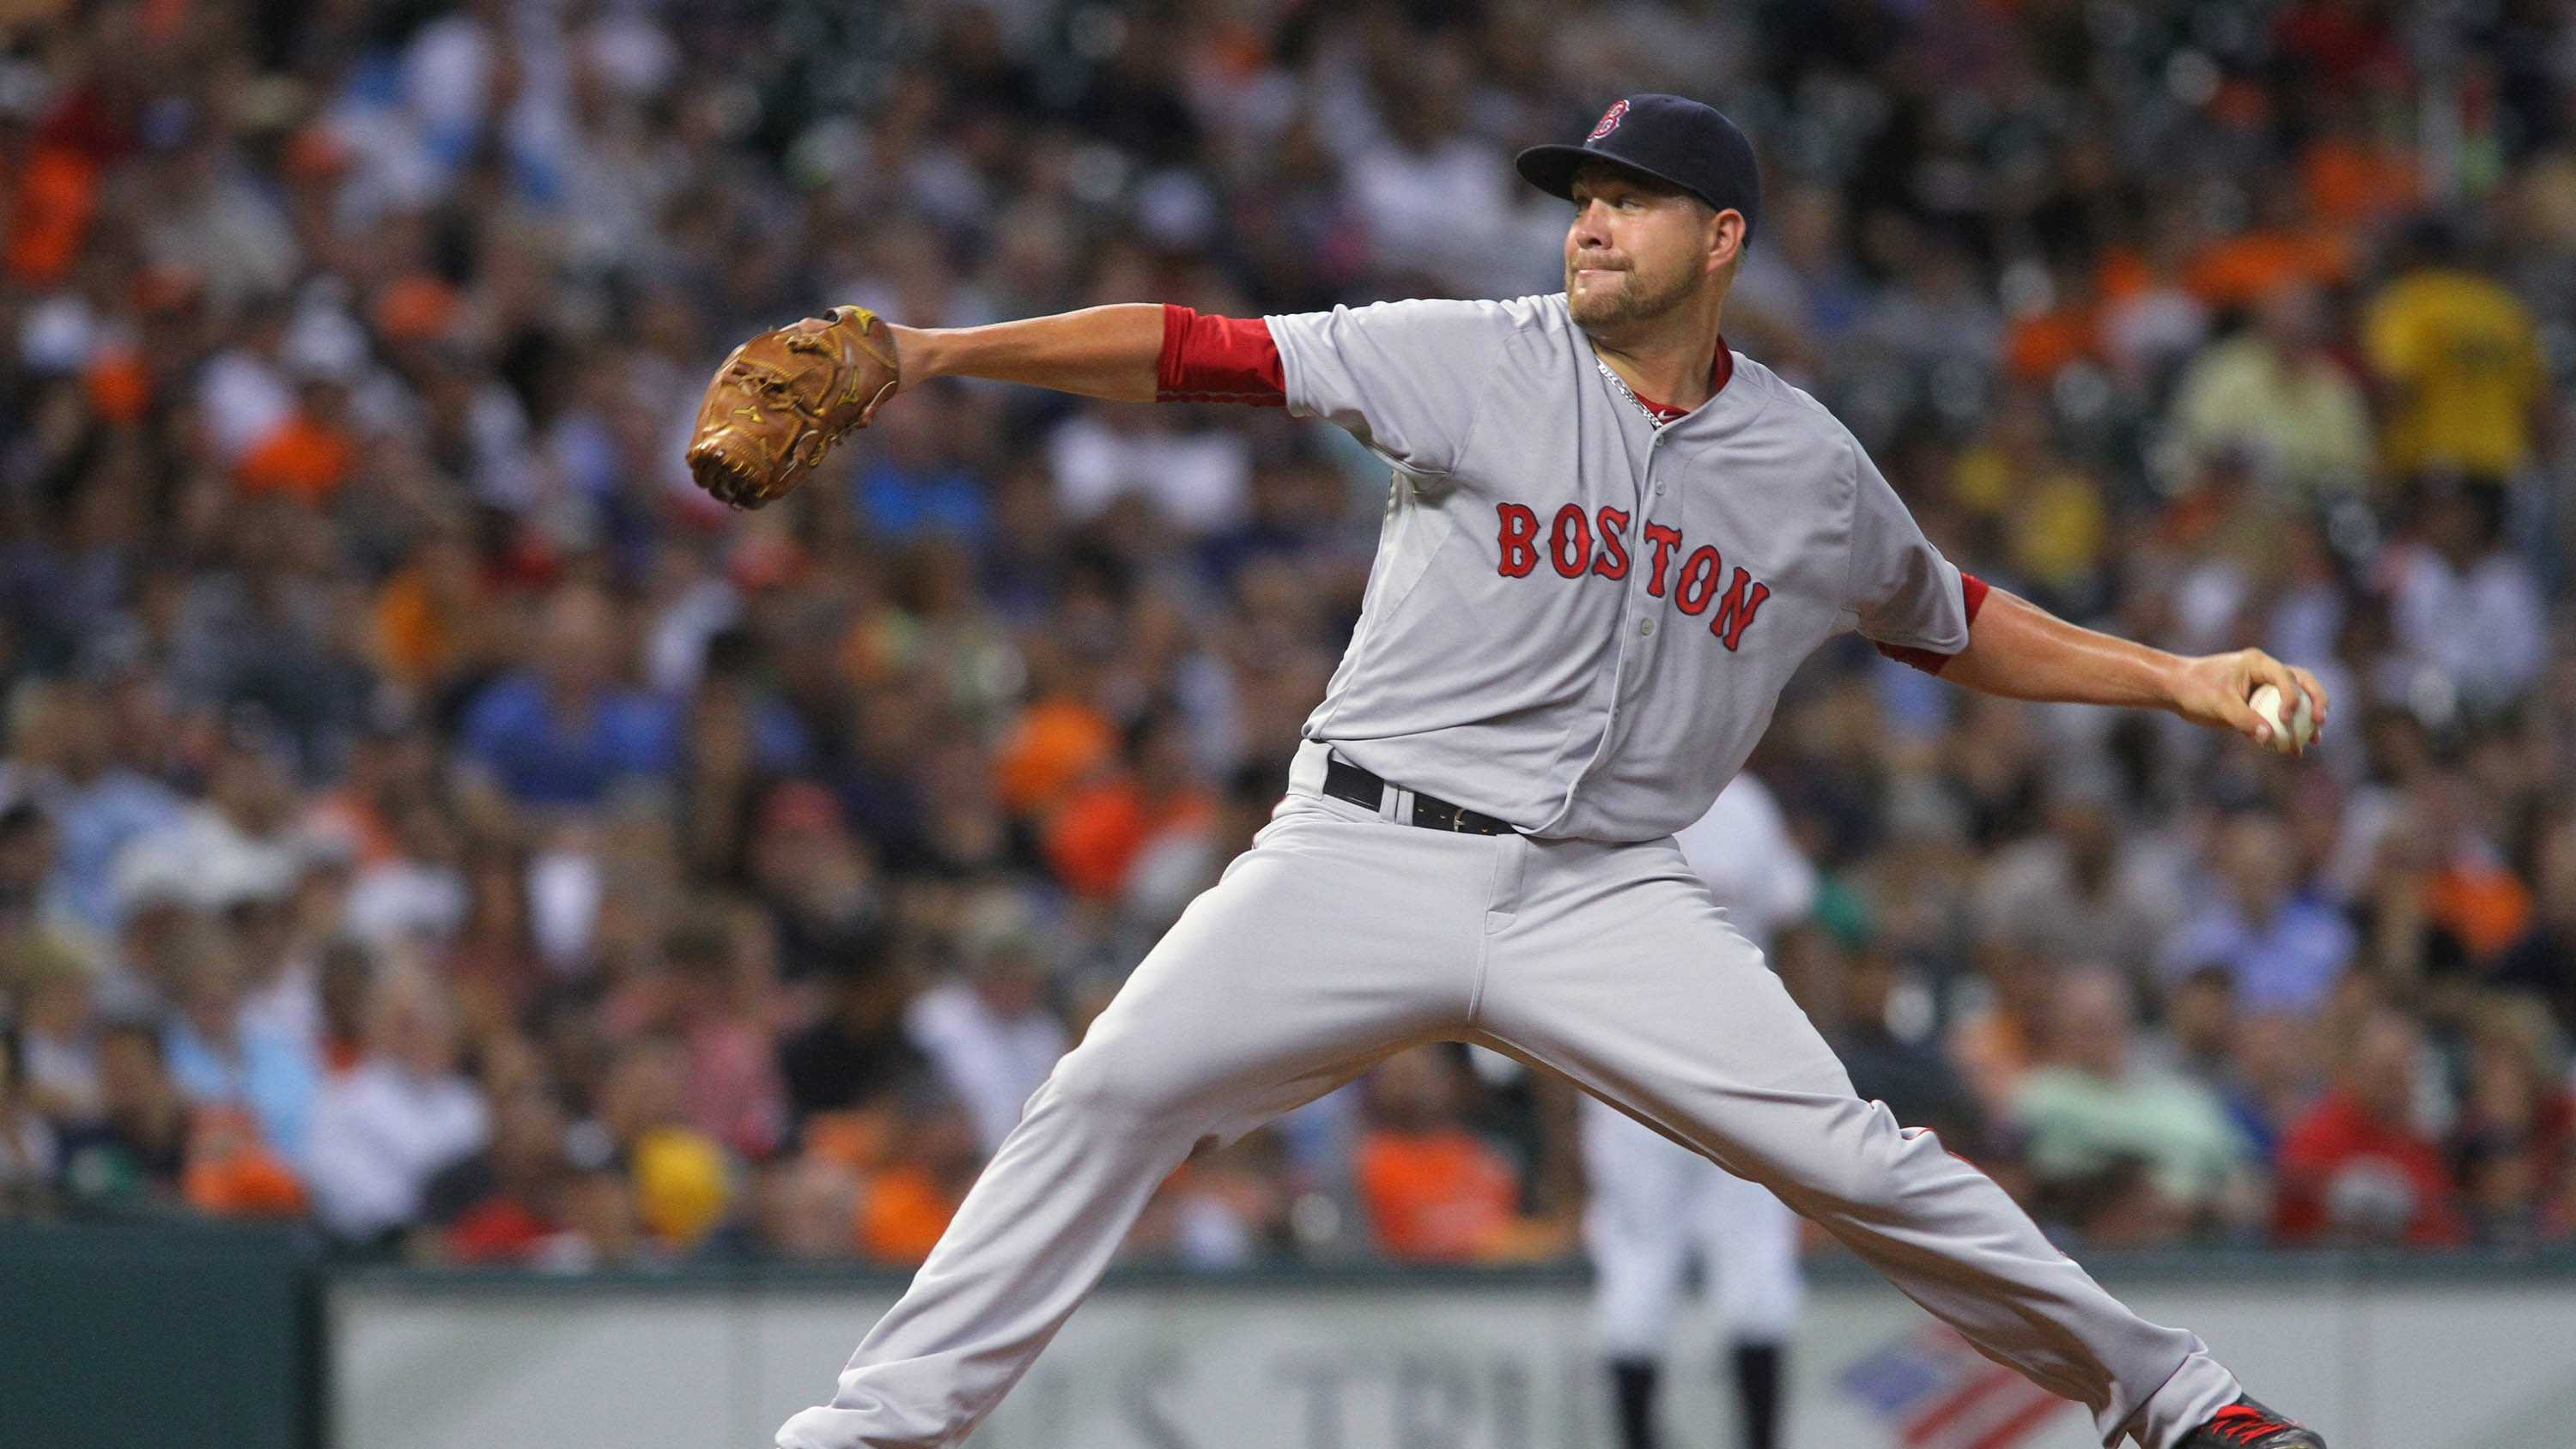 Boston Red Sox's Brian Johnson delivers a pitch against the Houston Astros during the third inning of a baseball game Tuesday, July, 21, 2015 in Houston. (AP Photo/Richard Carson)